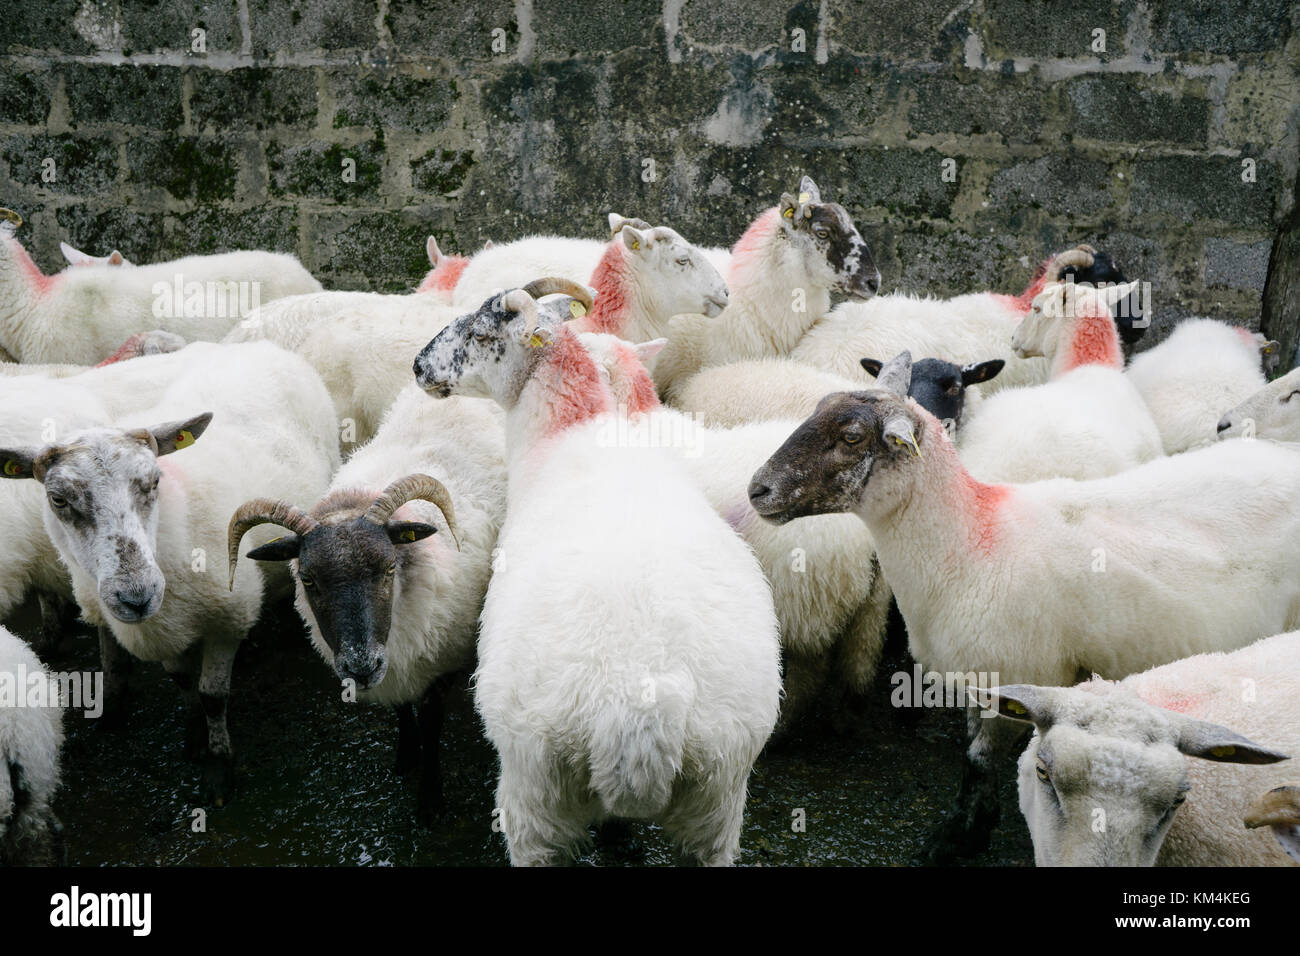 Small herd of sheep on a farm in Glenade, County Leitrim, Ireland. - Stock Image